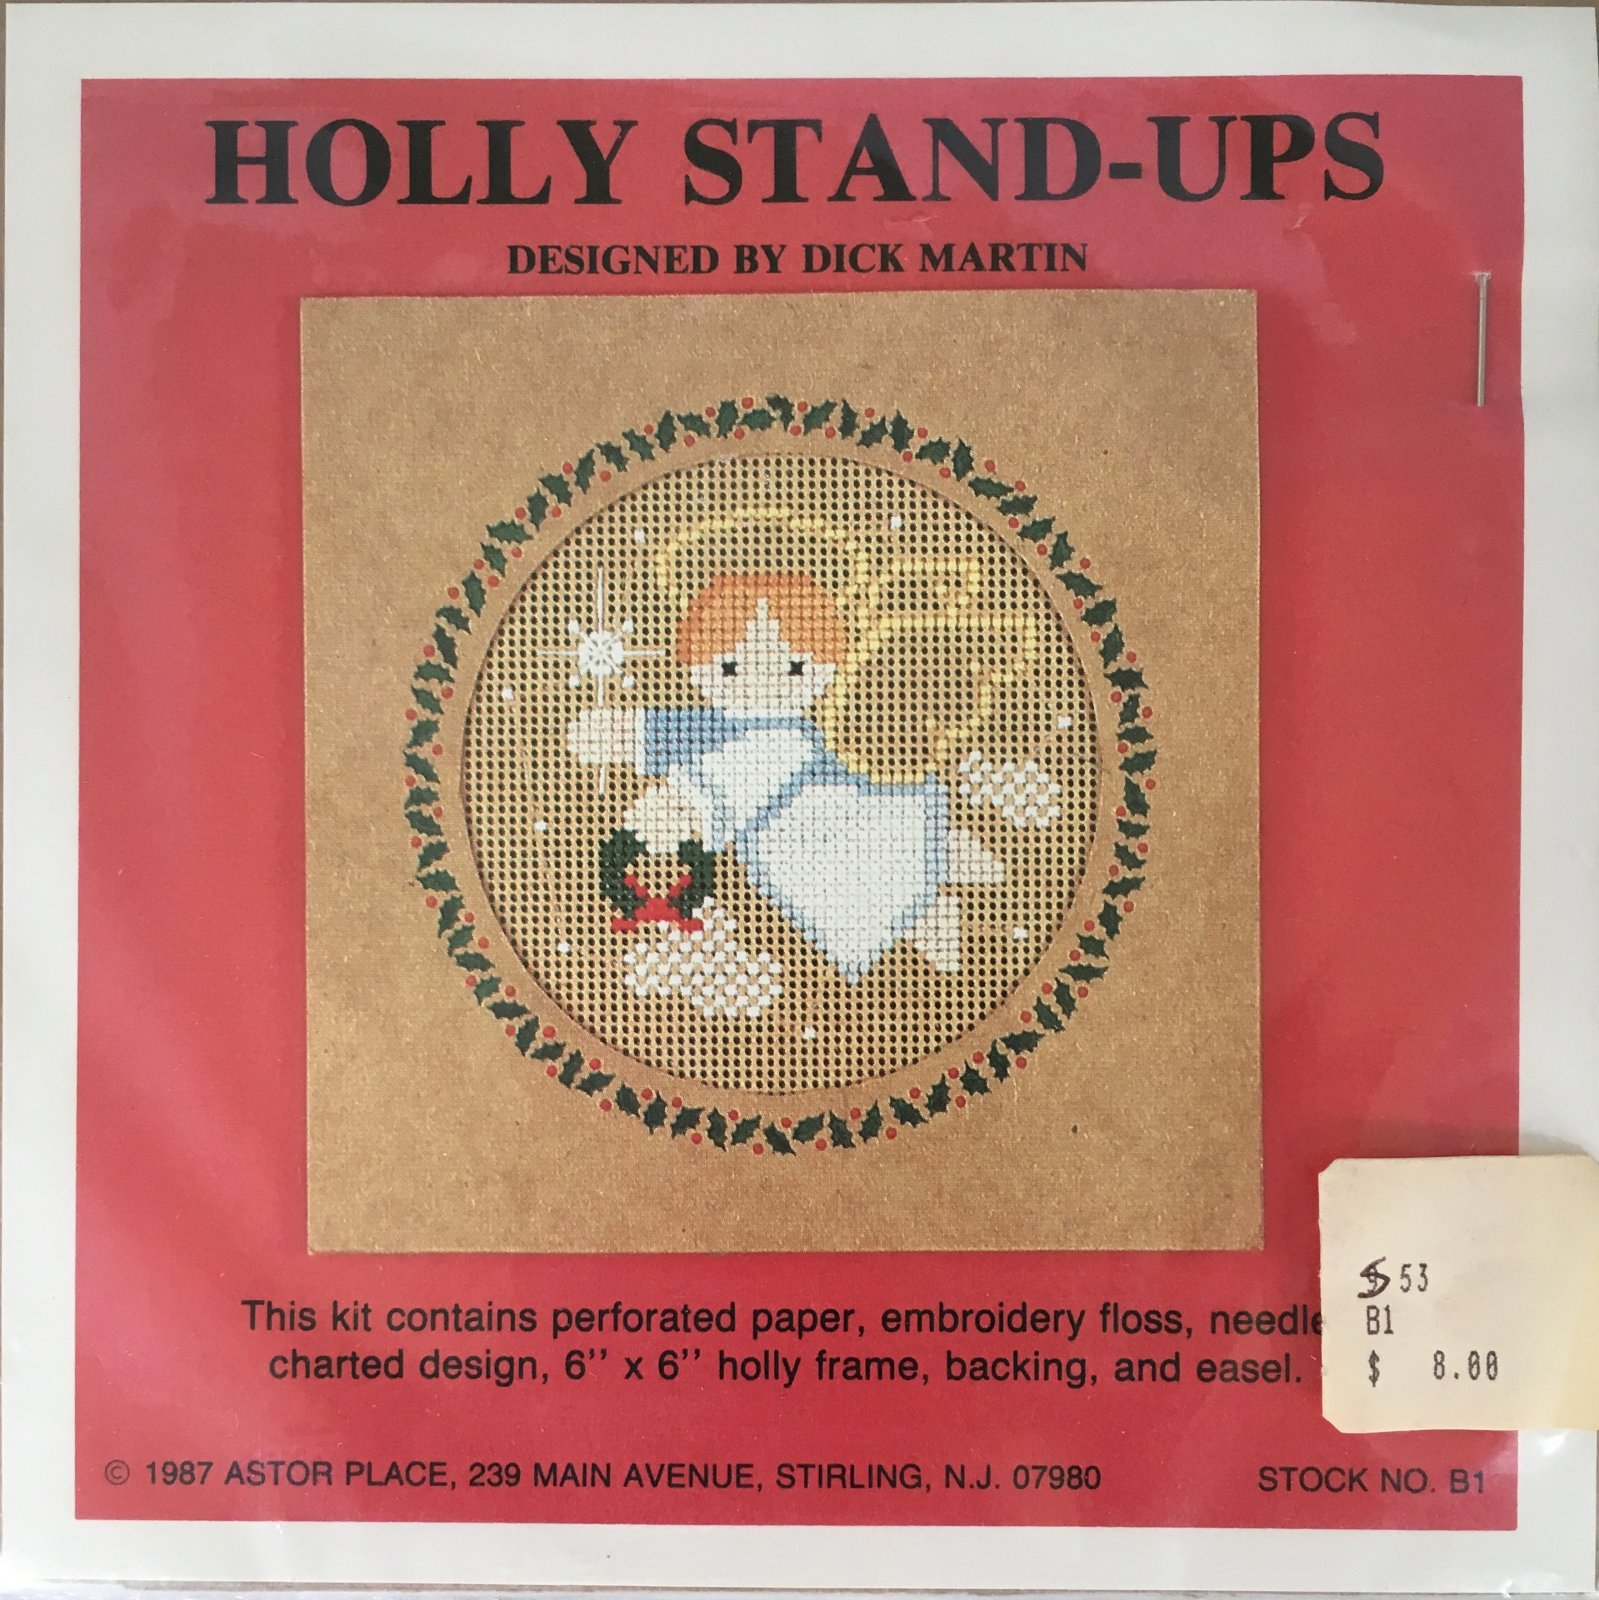 Astor Place: Holly Stand-Ups Angel Kit B1